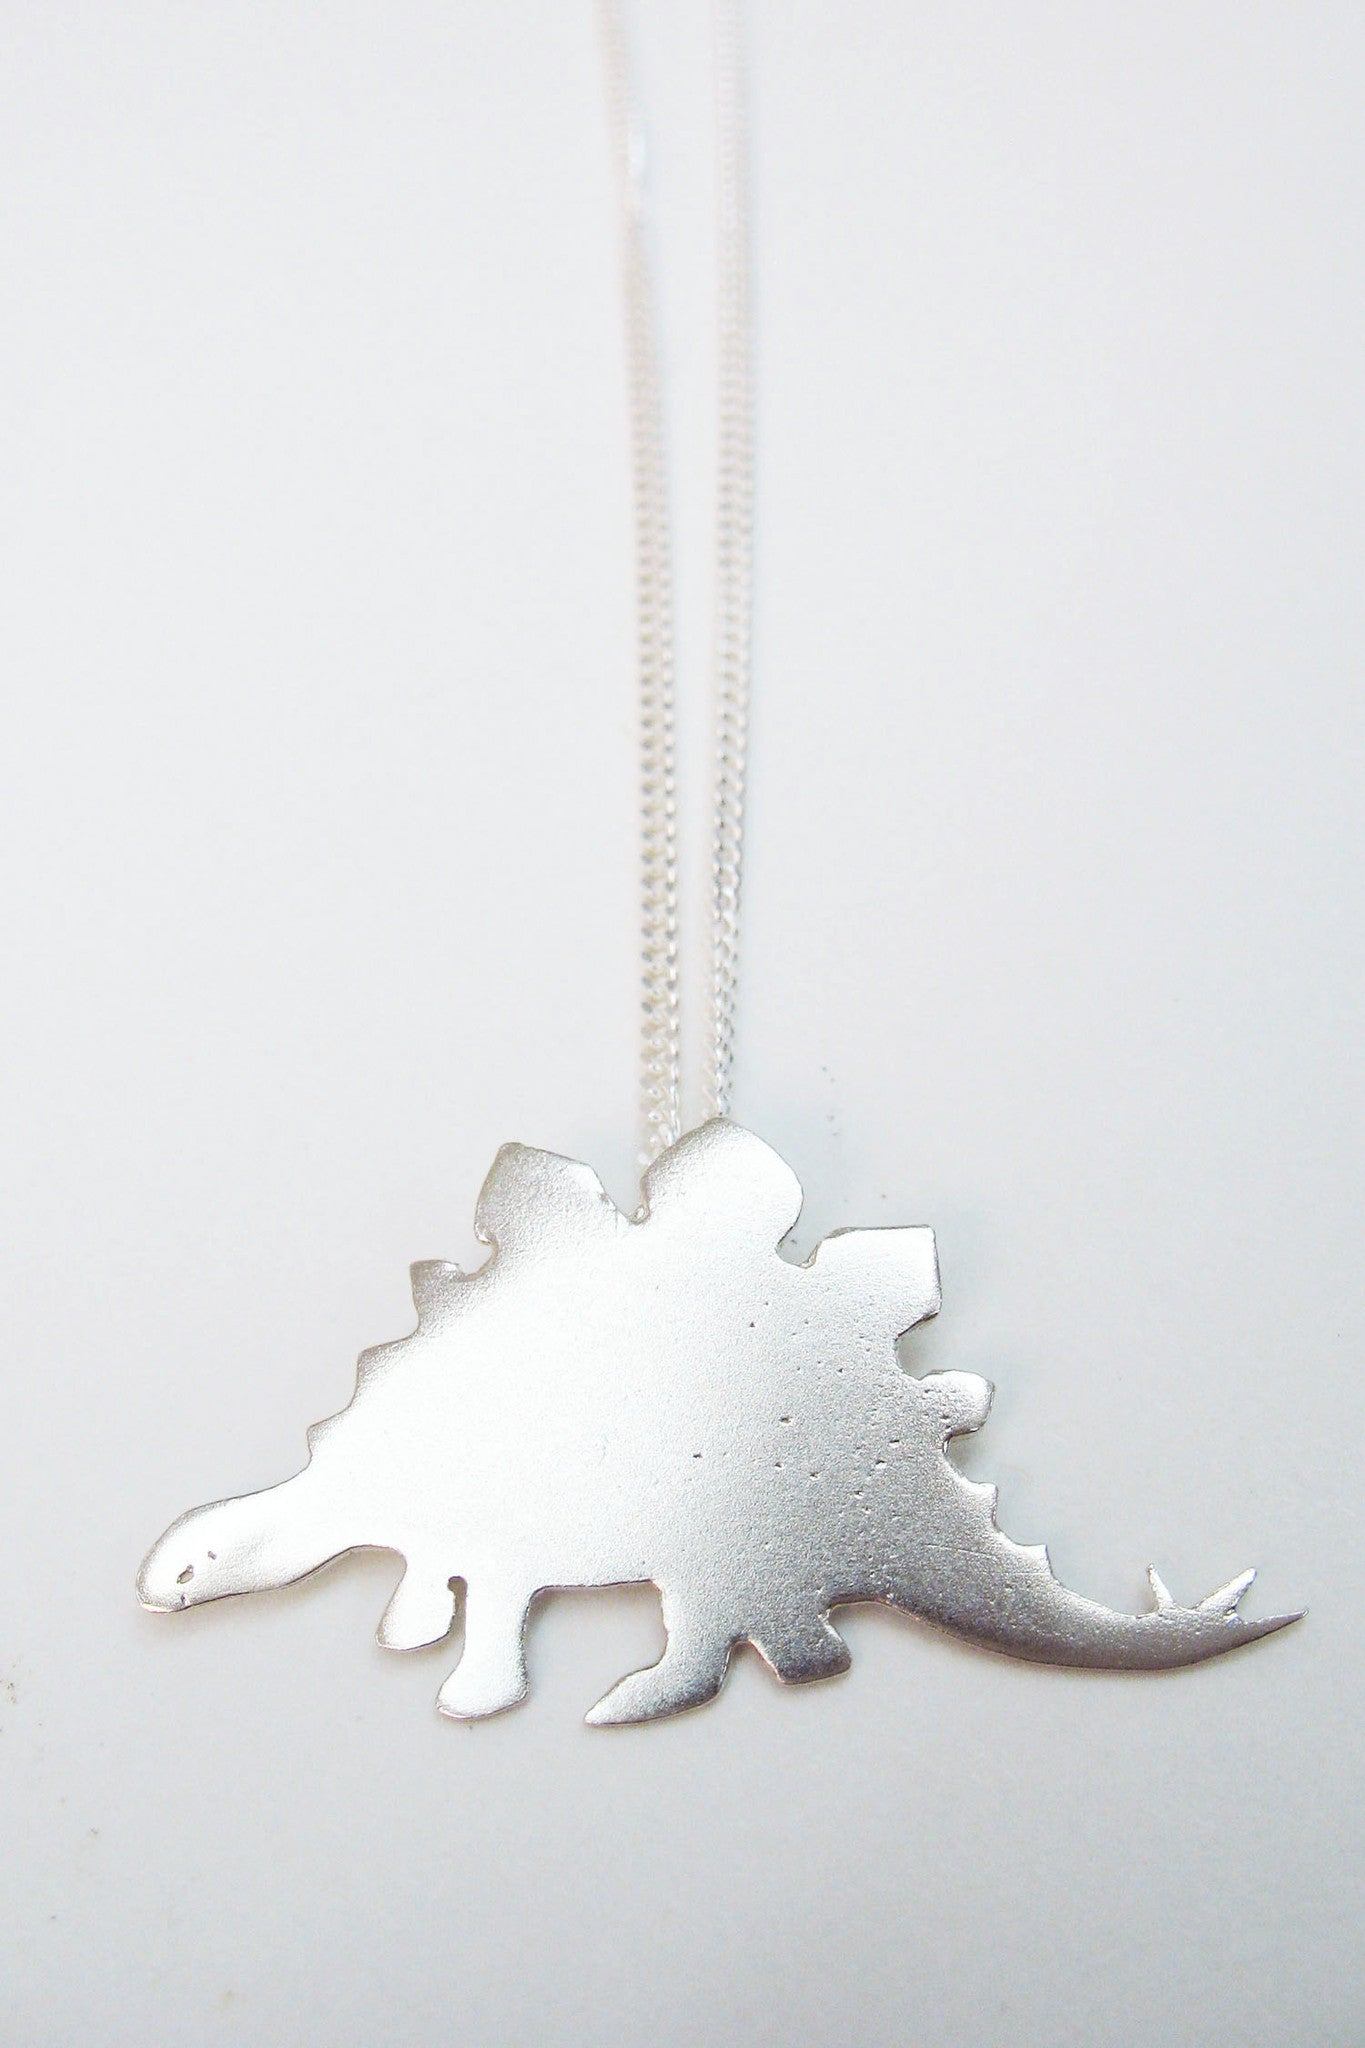 Sterling Silver Stegasaurus Dinosaur necklace by Slashpile Designs